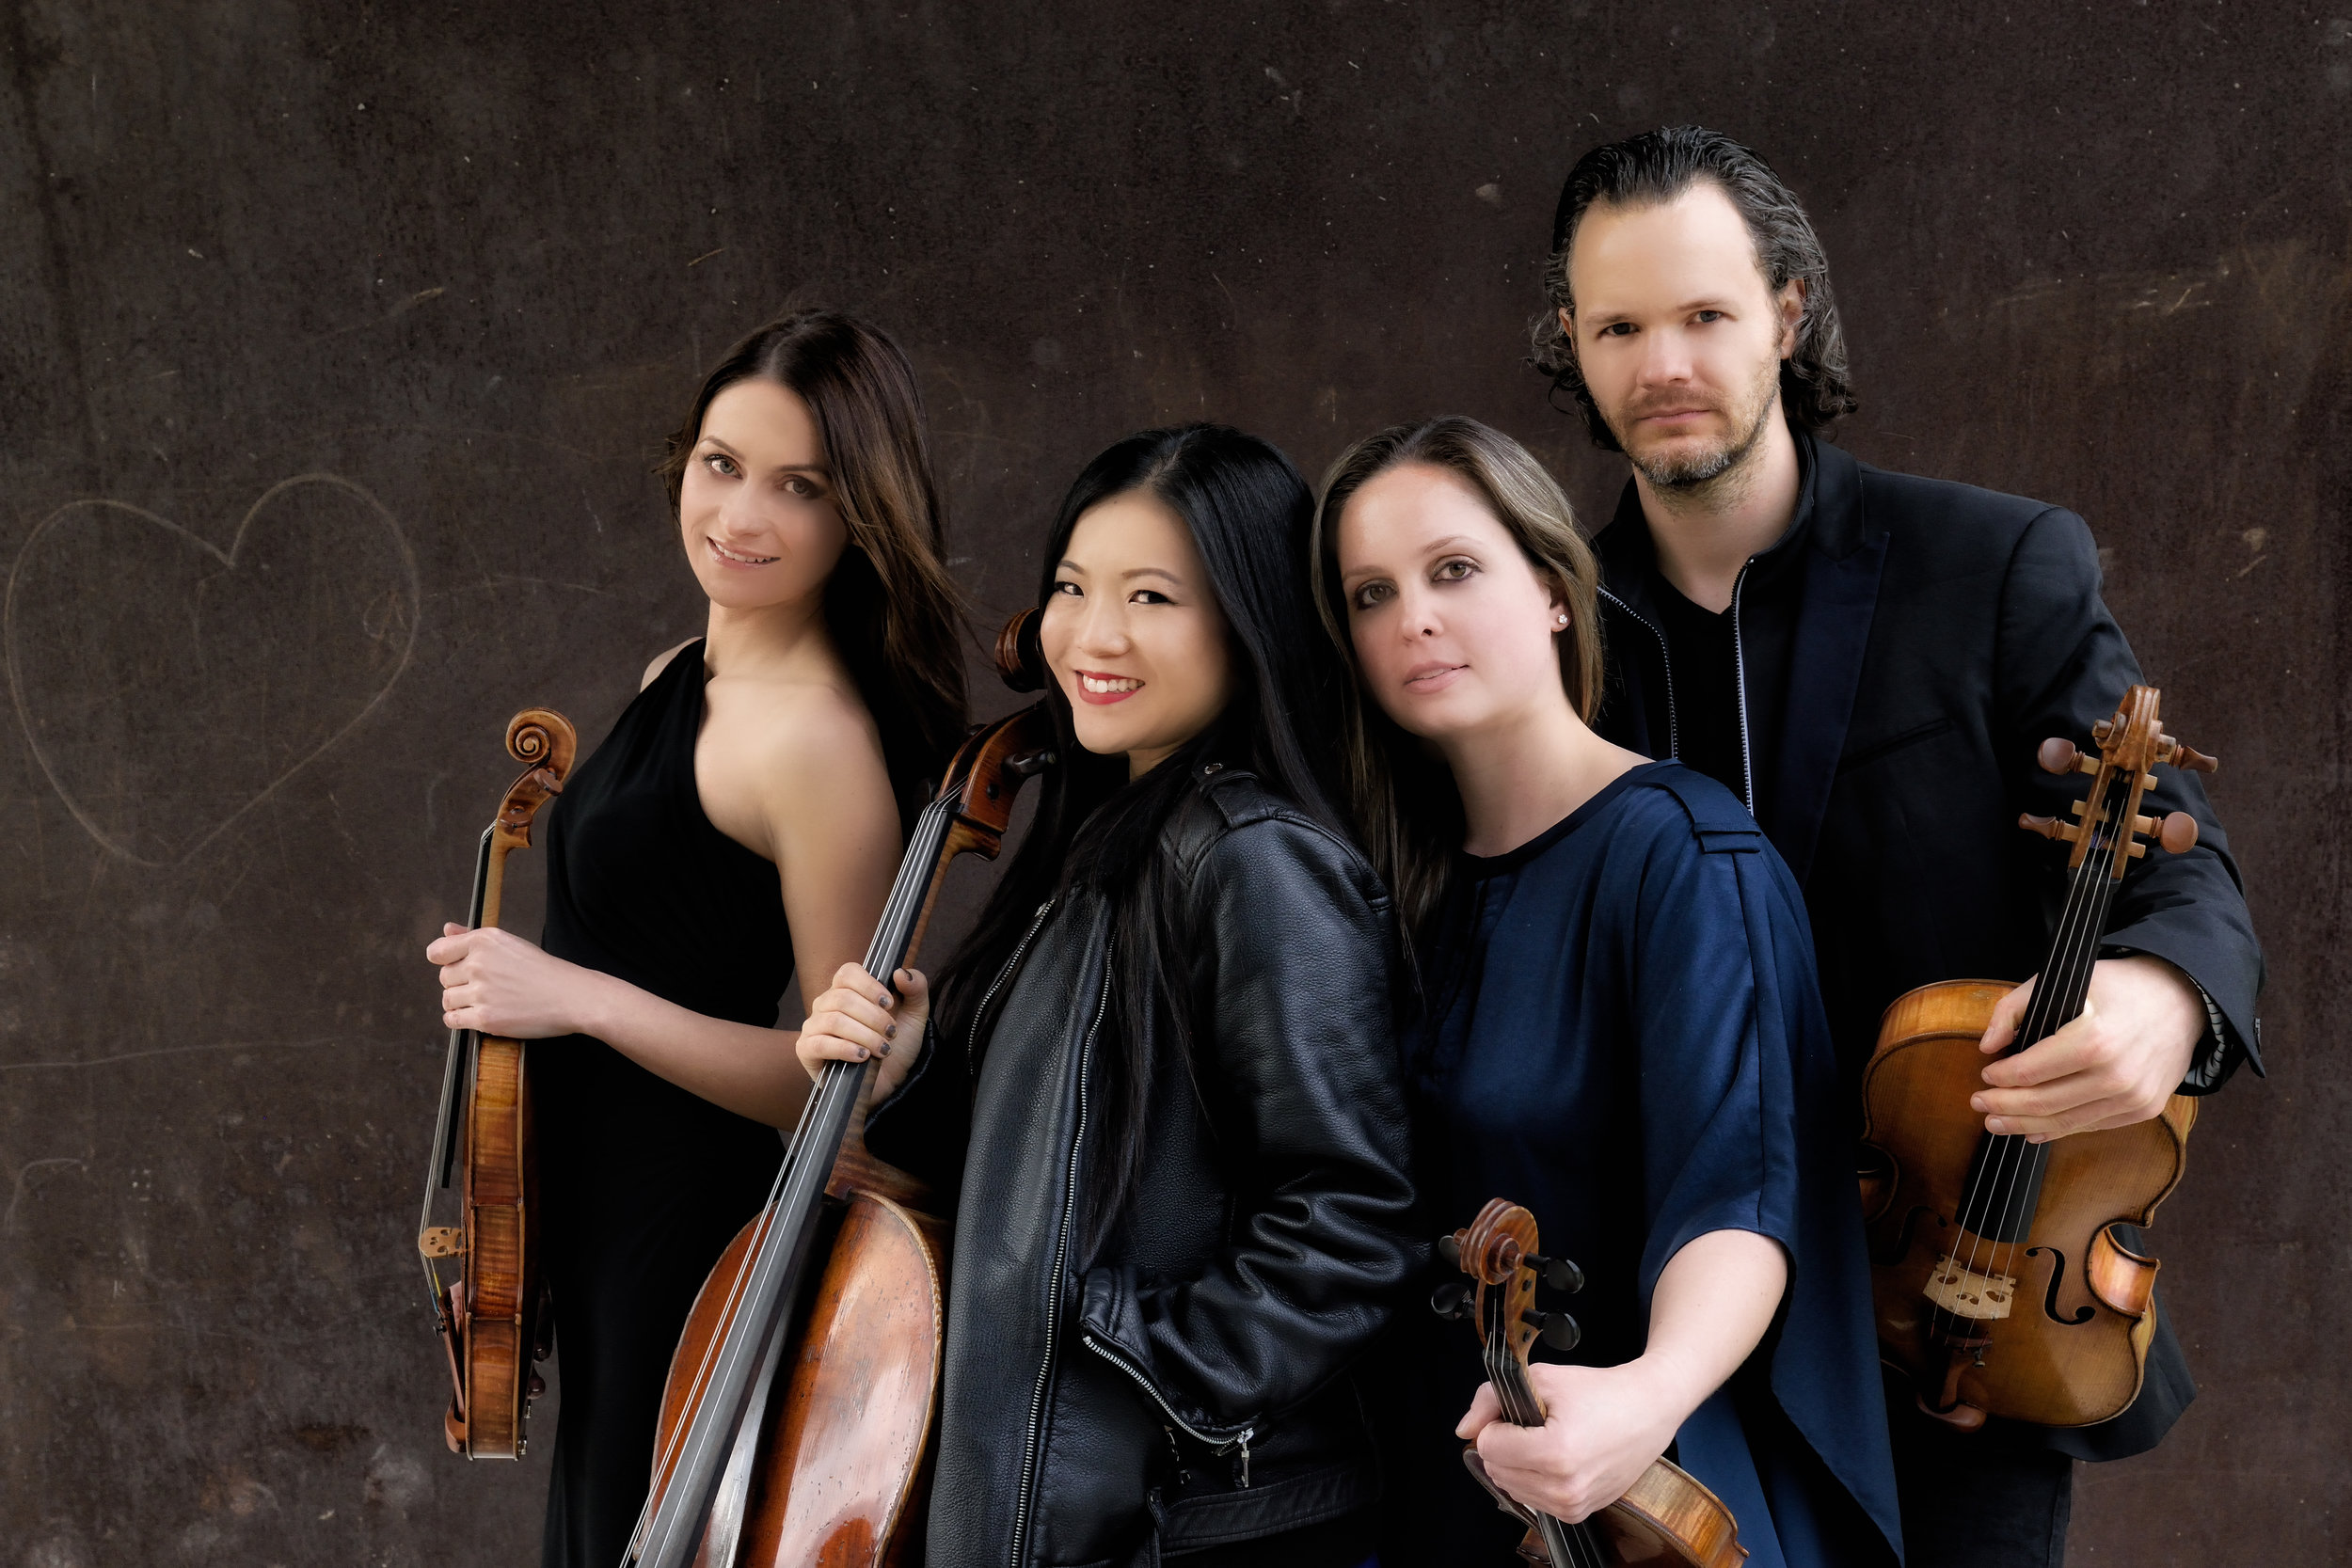 L to R: Galina Zhdanova, Wendy Law, Emily Ondracek-Peterson, Erik Christian Peterson